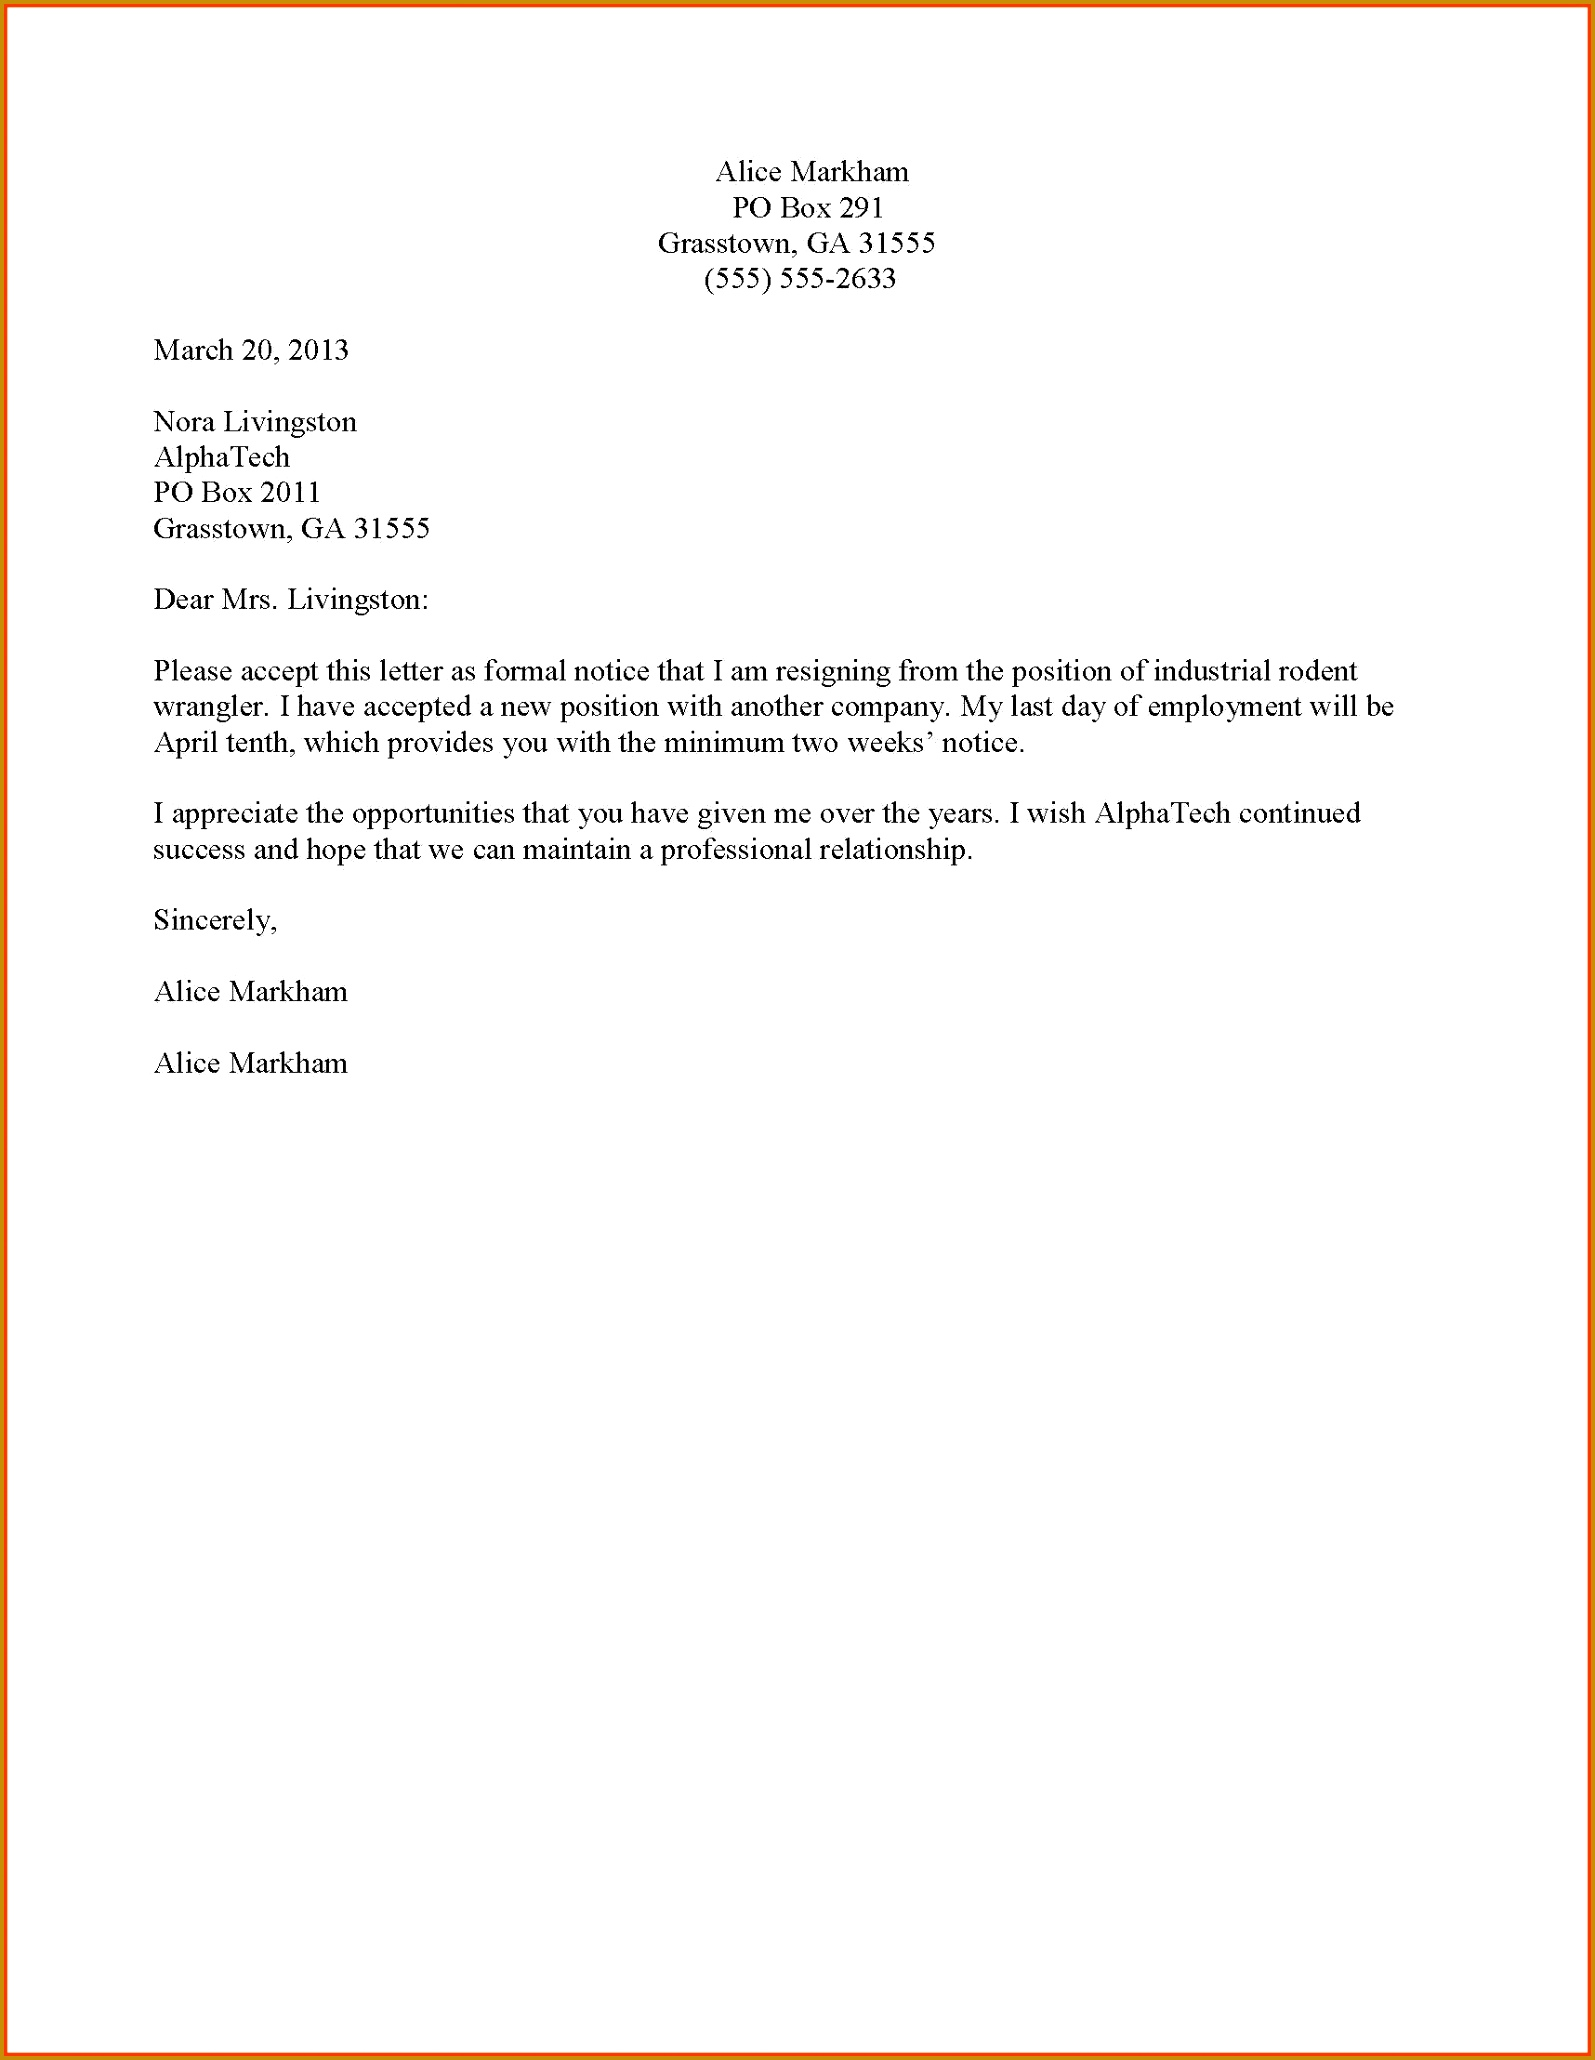 Formal Resignation Letter Templates formal Resignation Letter Template 20601595